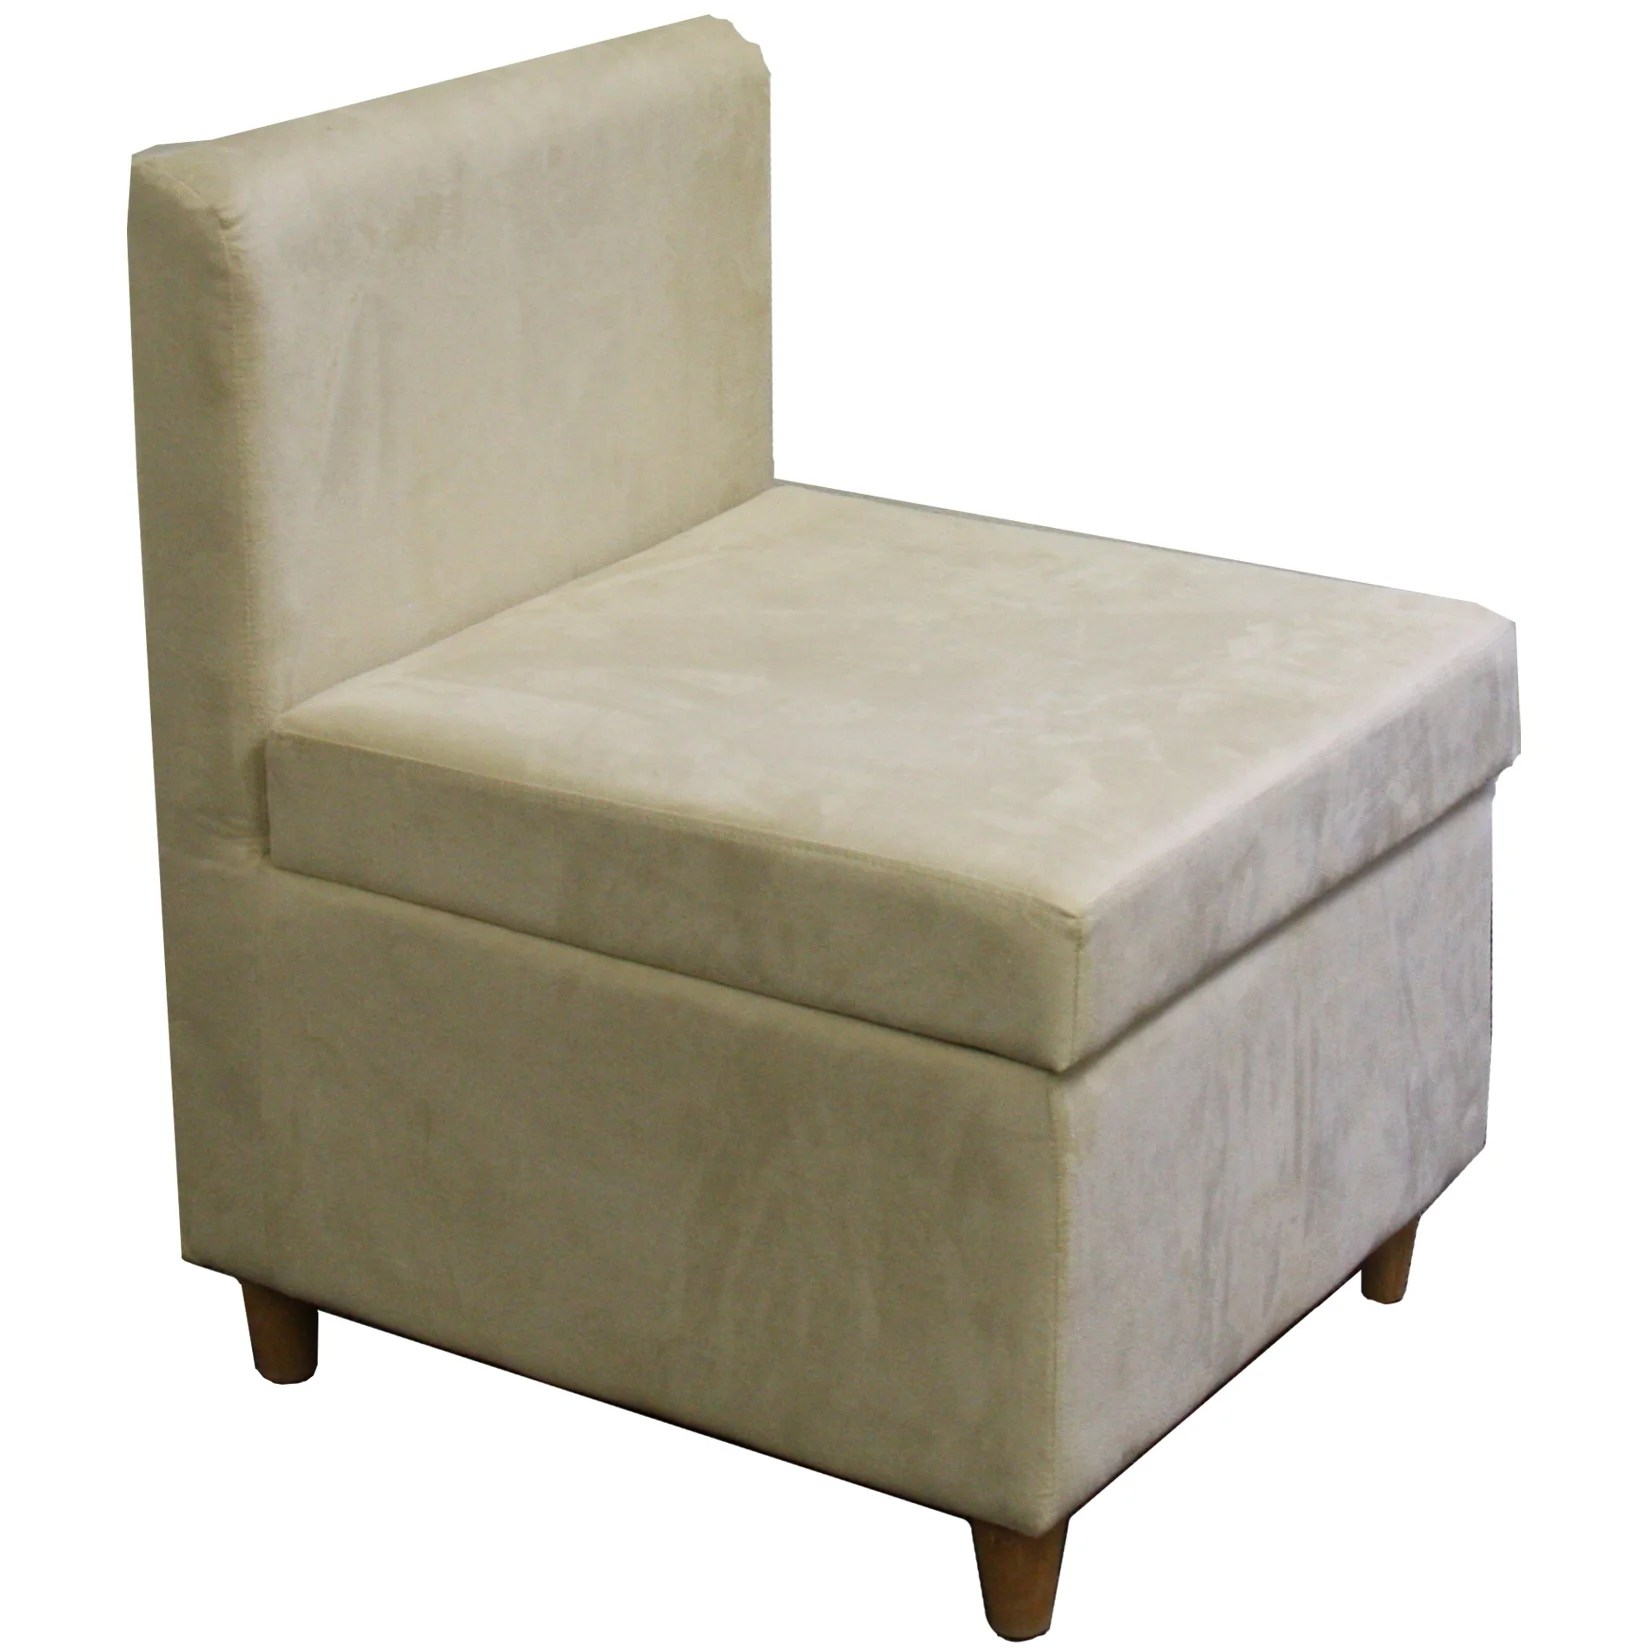 ORE Furniture Side Chair with Storage  Wayfair